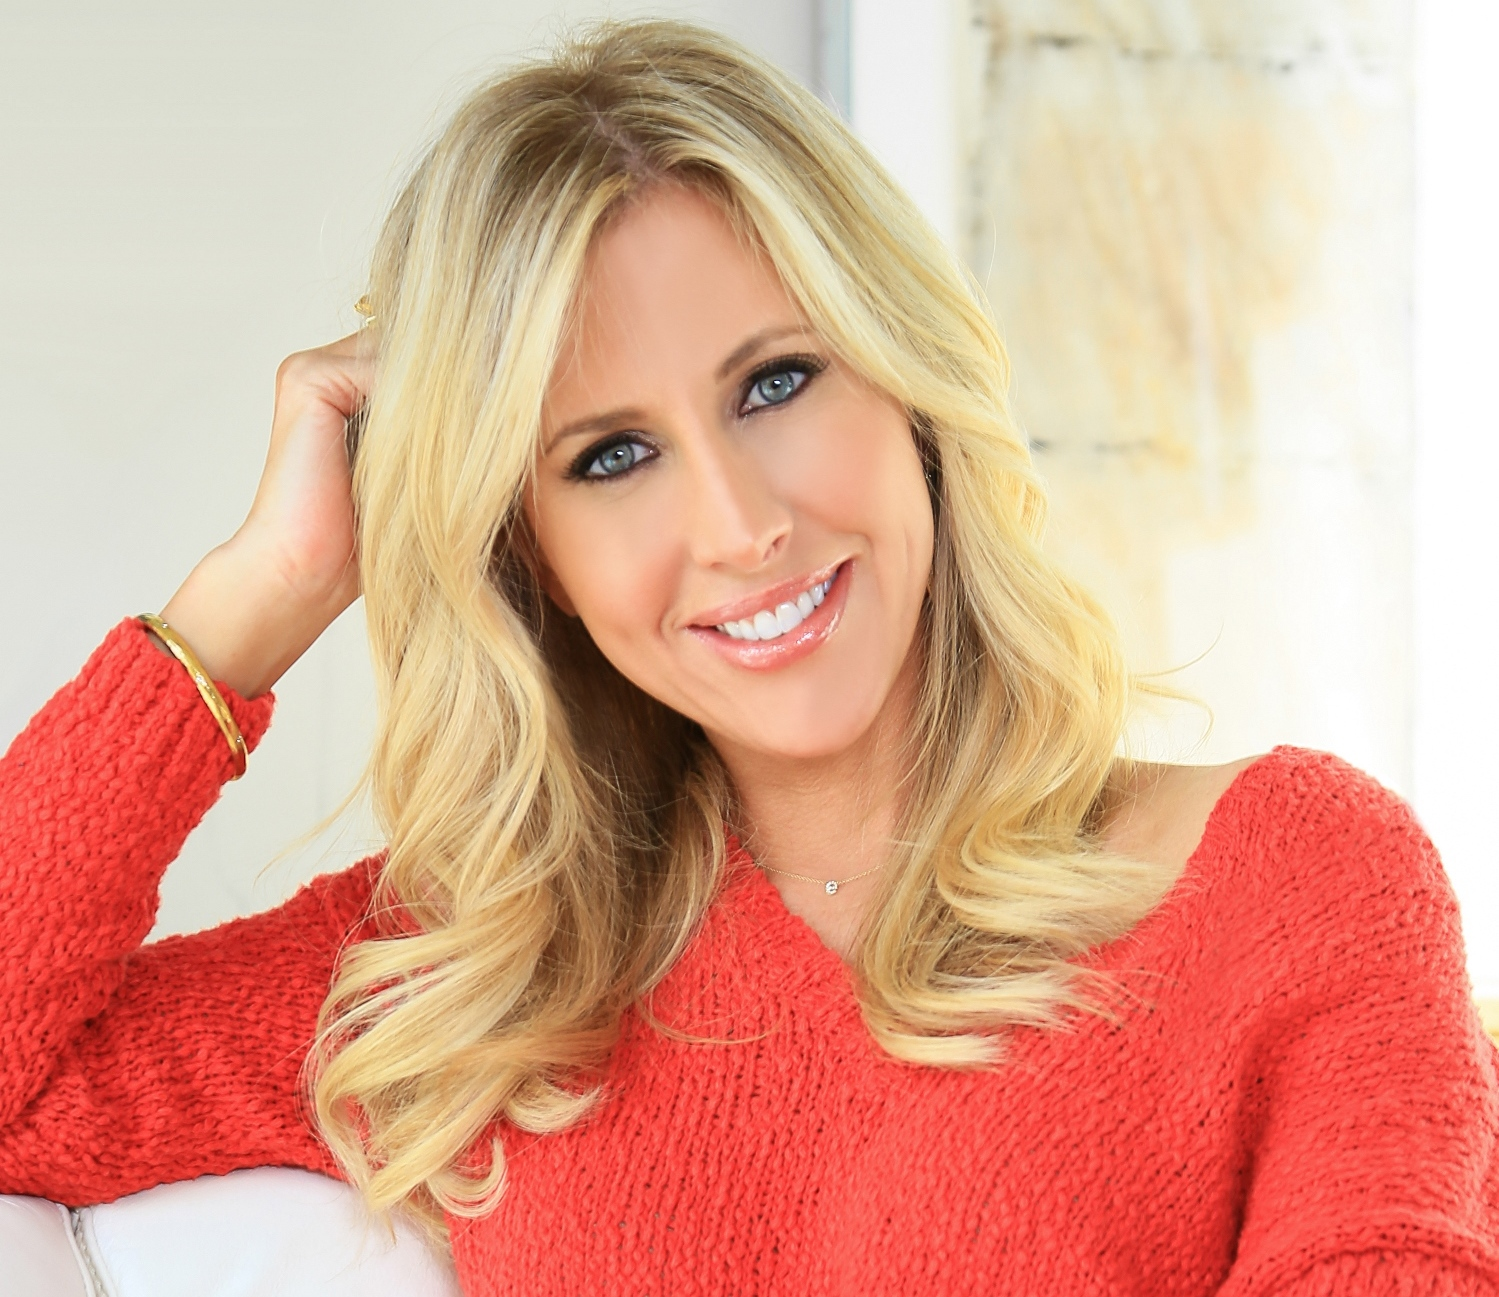 We interviewed bestselling author Emily Giffin during her insanely popular book tour and as expected, she's amazing